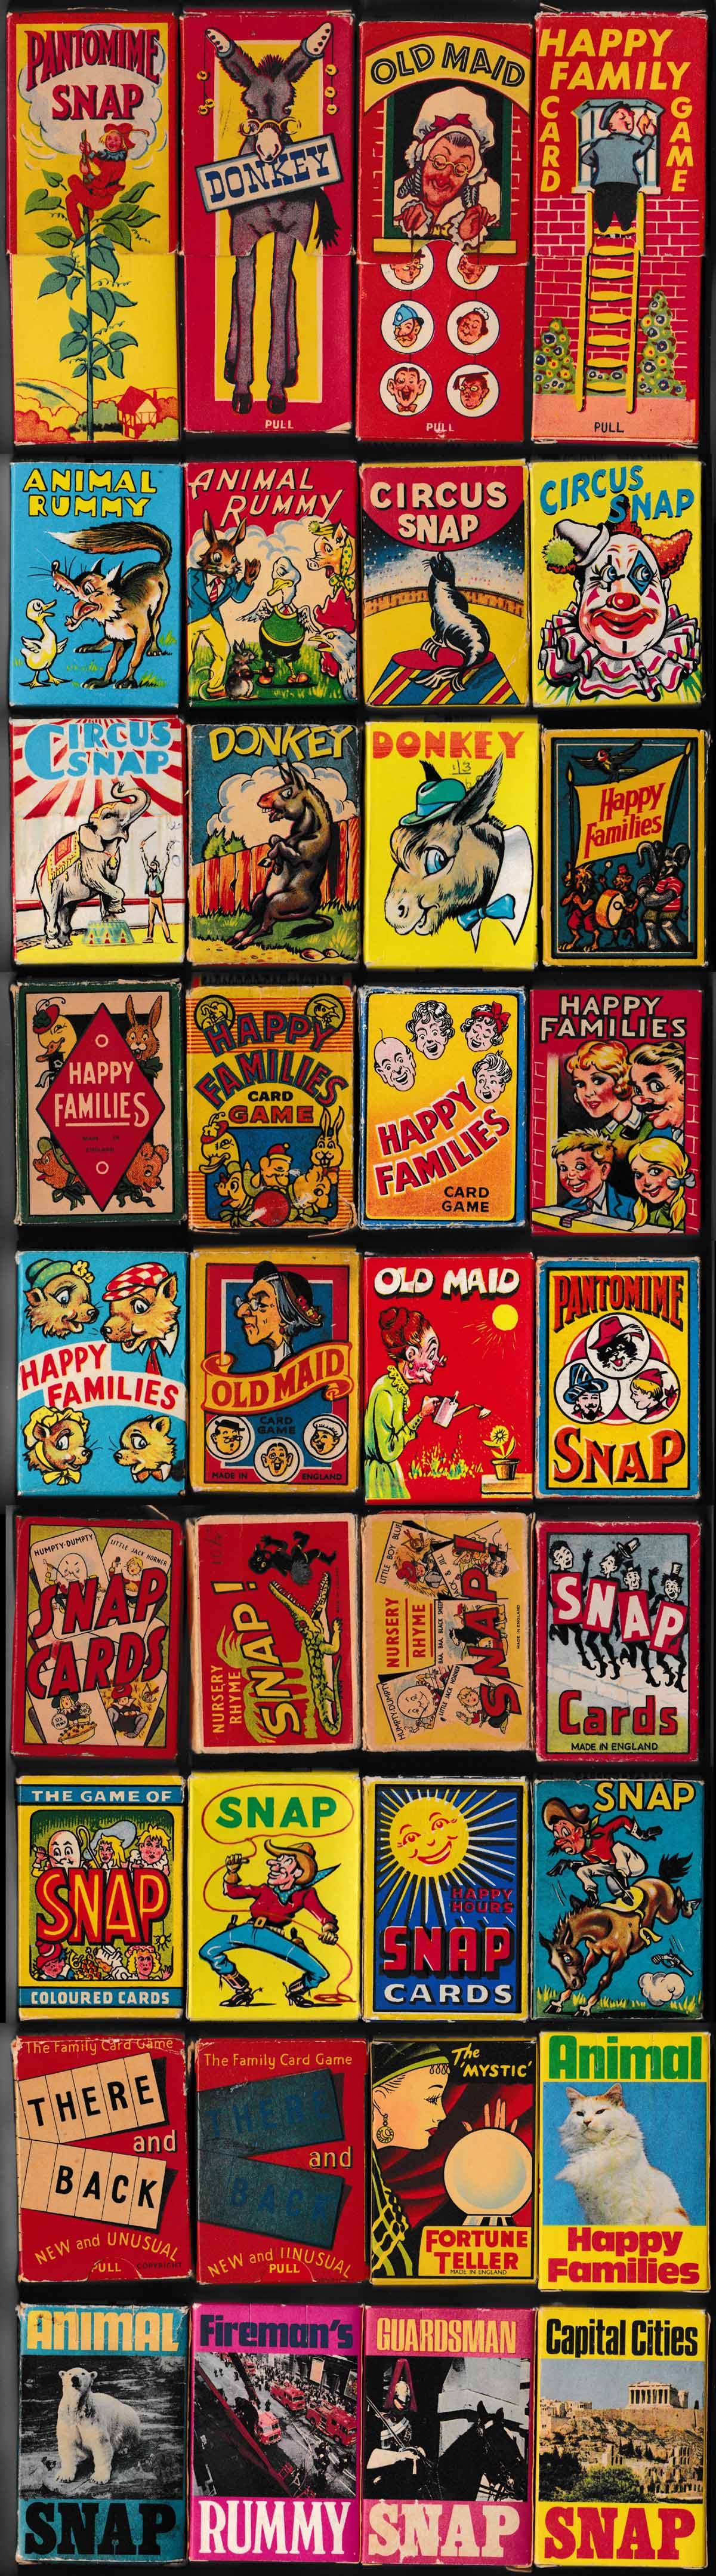 'Clifford Series' card games, 1950s-60s